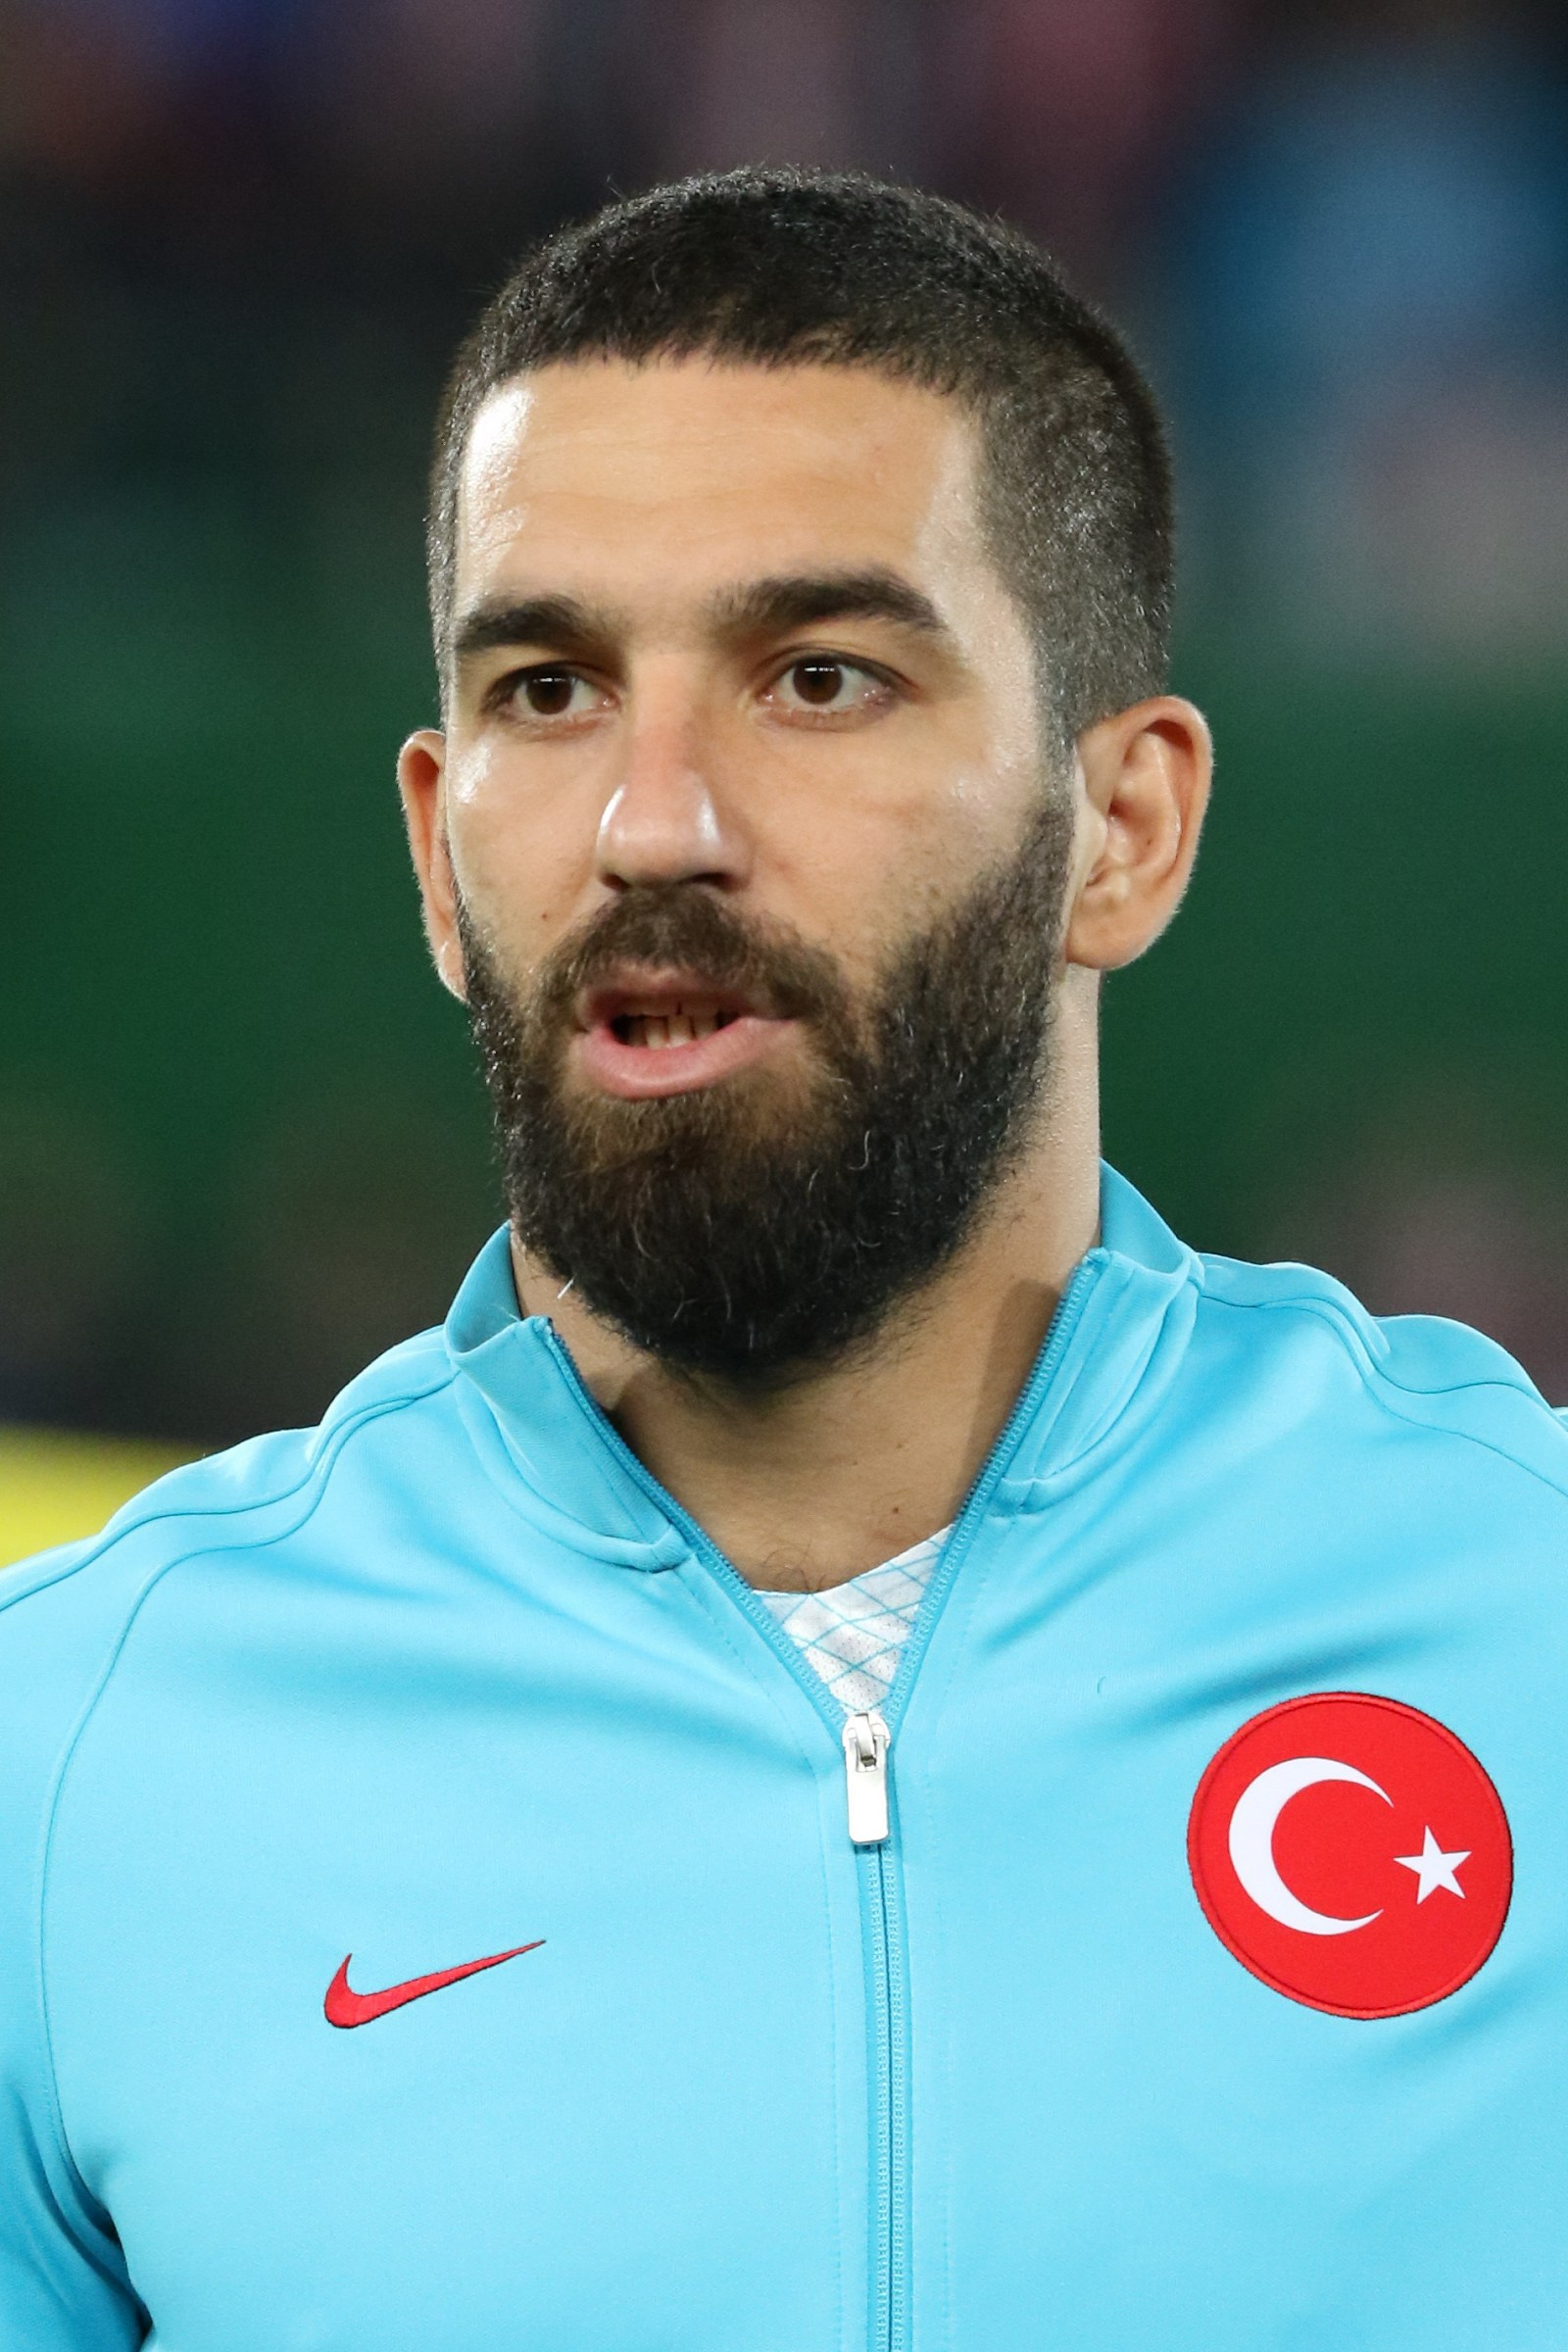 The 31-year old son of father Musa Turan and mother Fatma Turan Arda Turan in 2019 photo. Arda Turan earned a 8.5 million dollar salary - leaving the net worth at 38 million in 2019